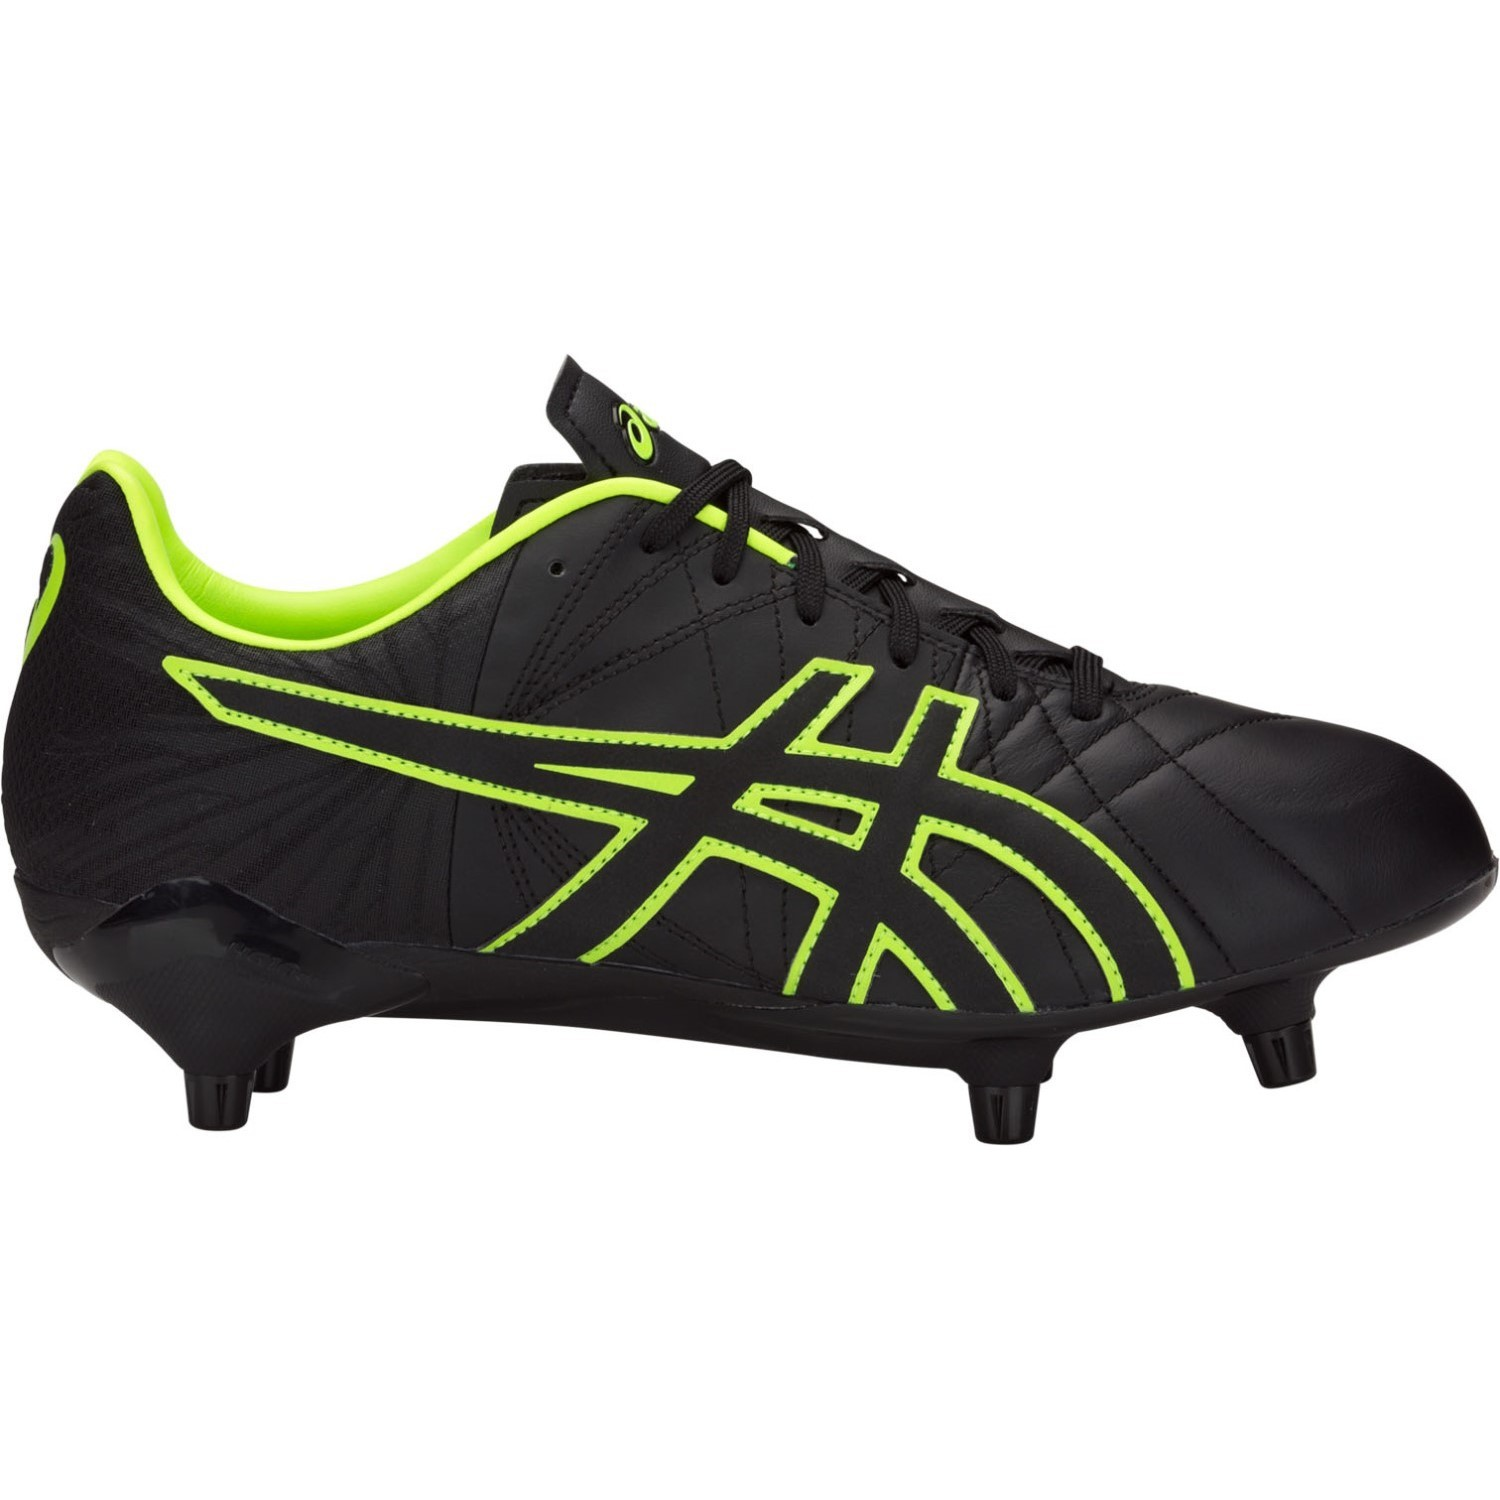 d4a673862 Asics Gel Lethal Tigreor ST - Mens Football Boots - Black Hazard Green